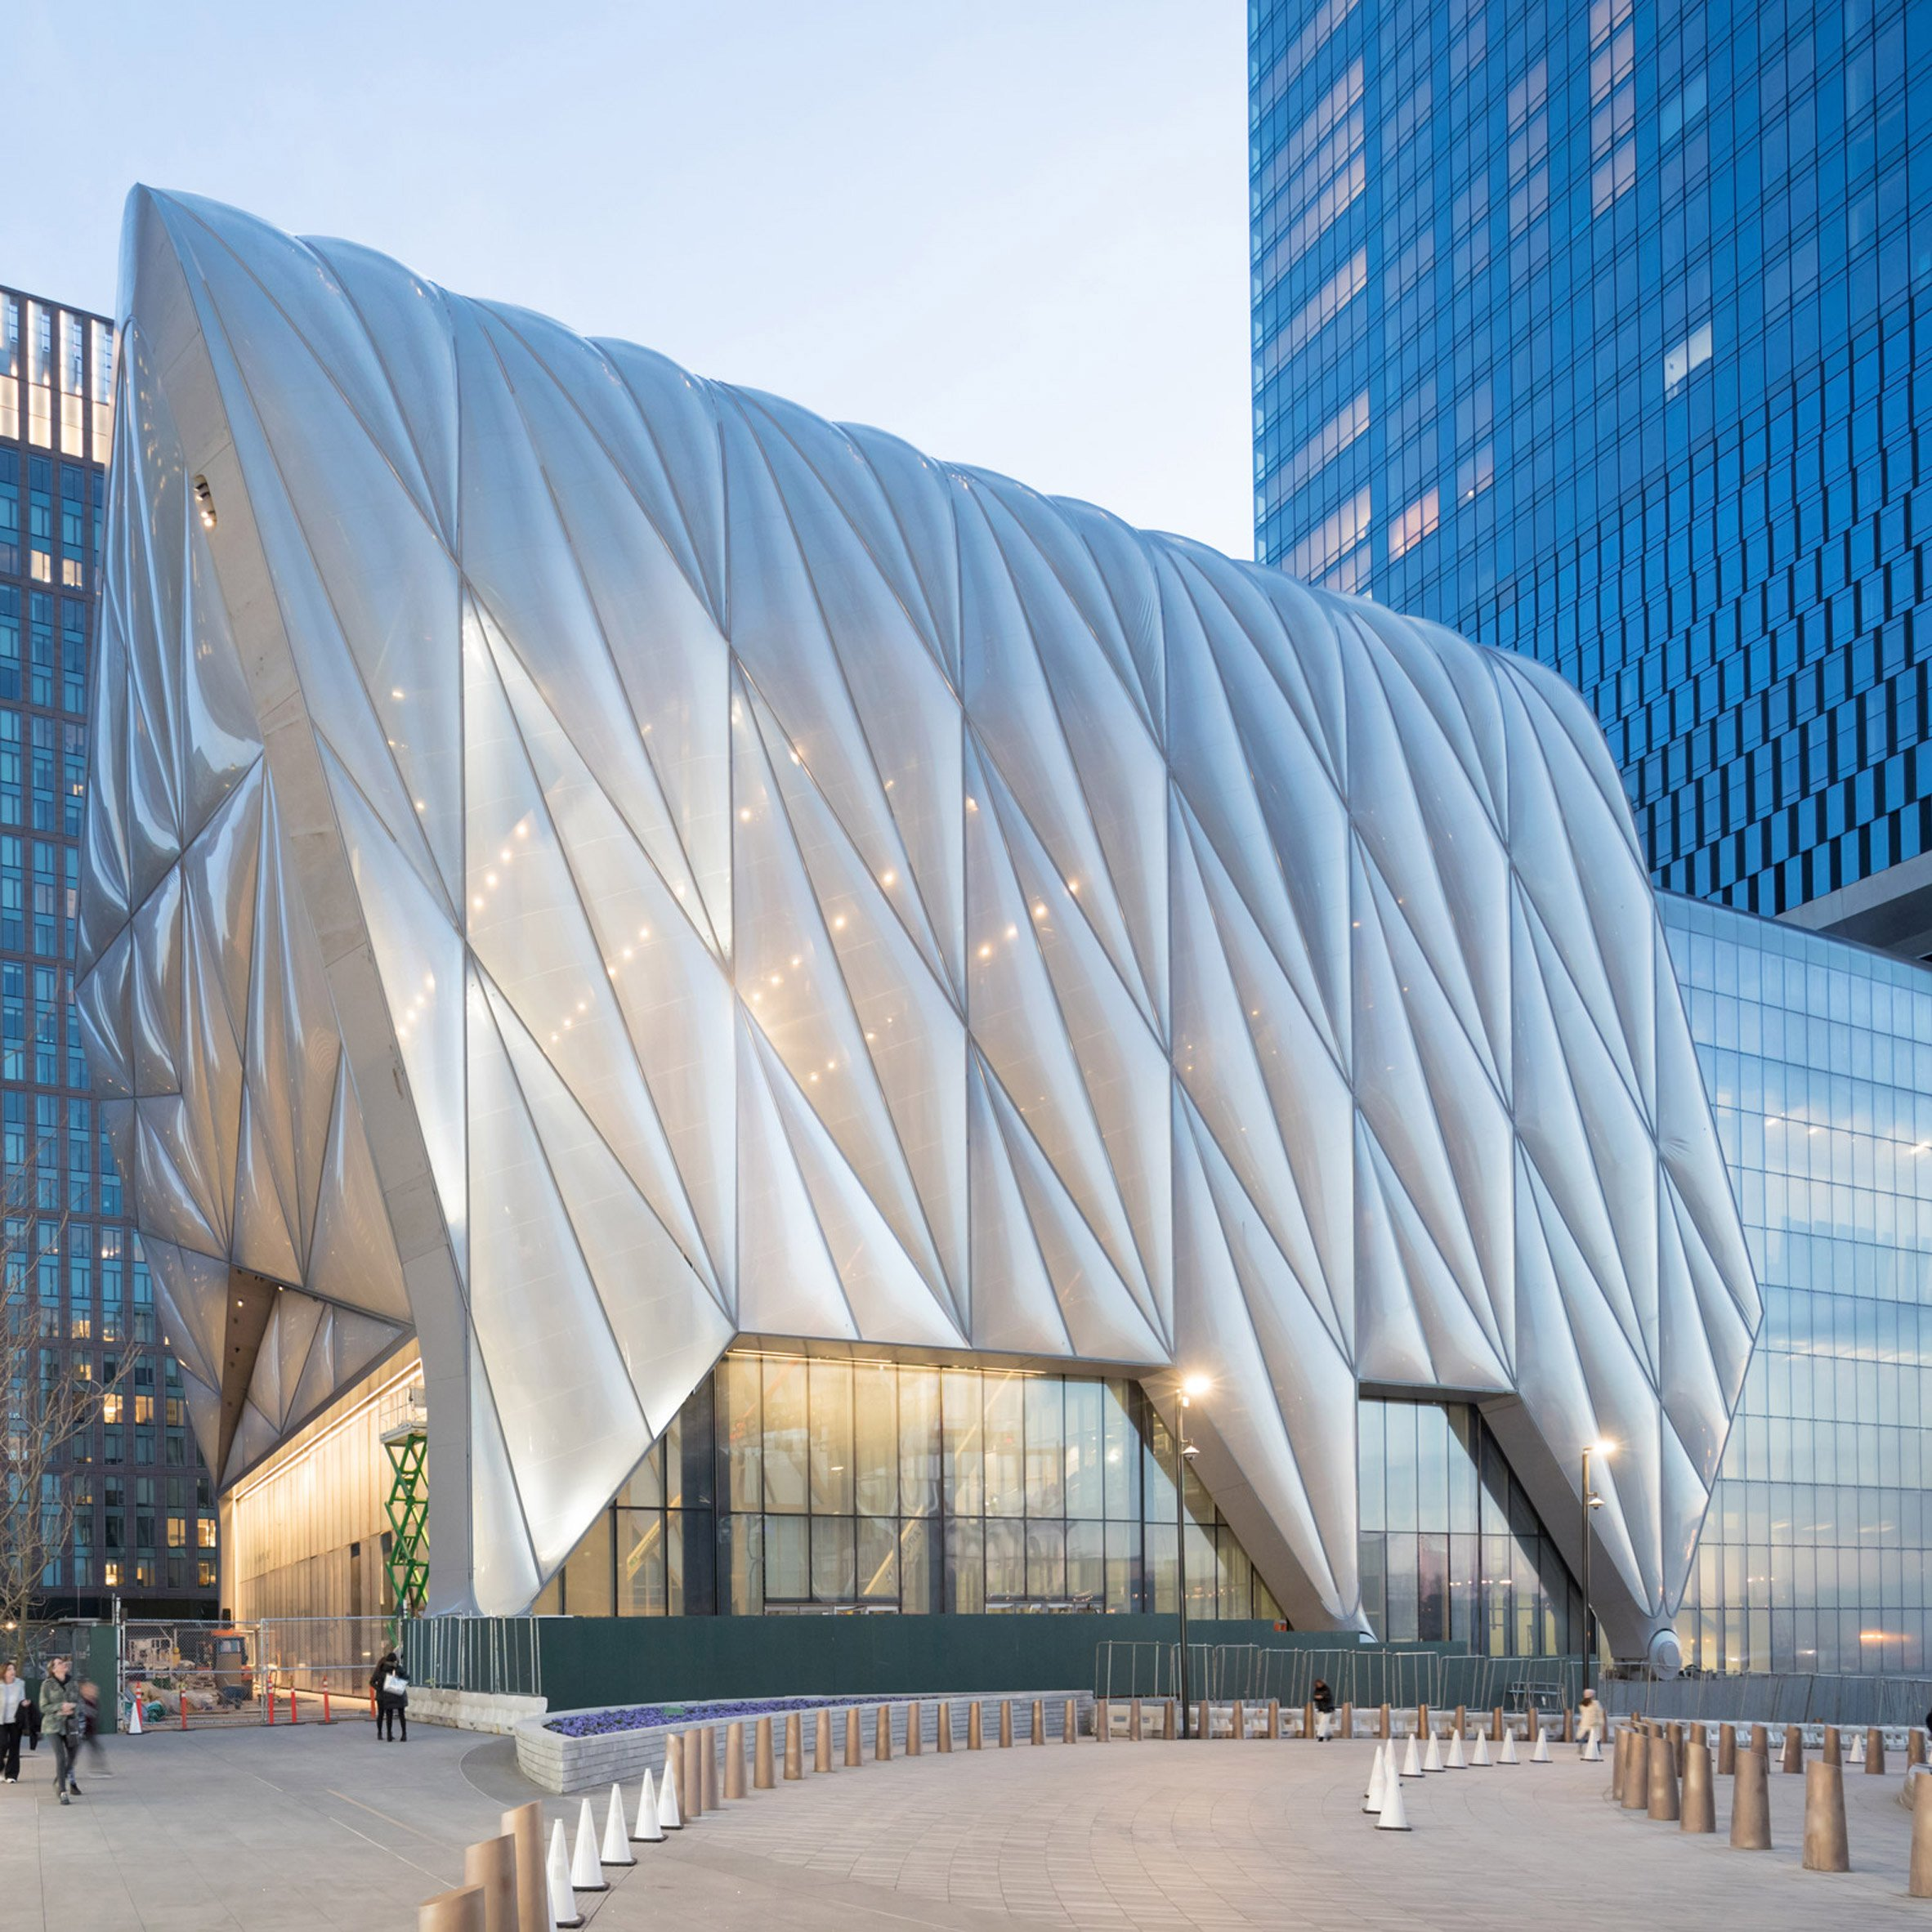 Top 10 US architecture projects of 2019: The Shed by DSR and Rockwell Group